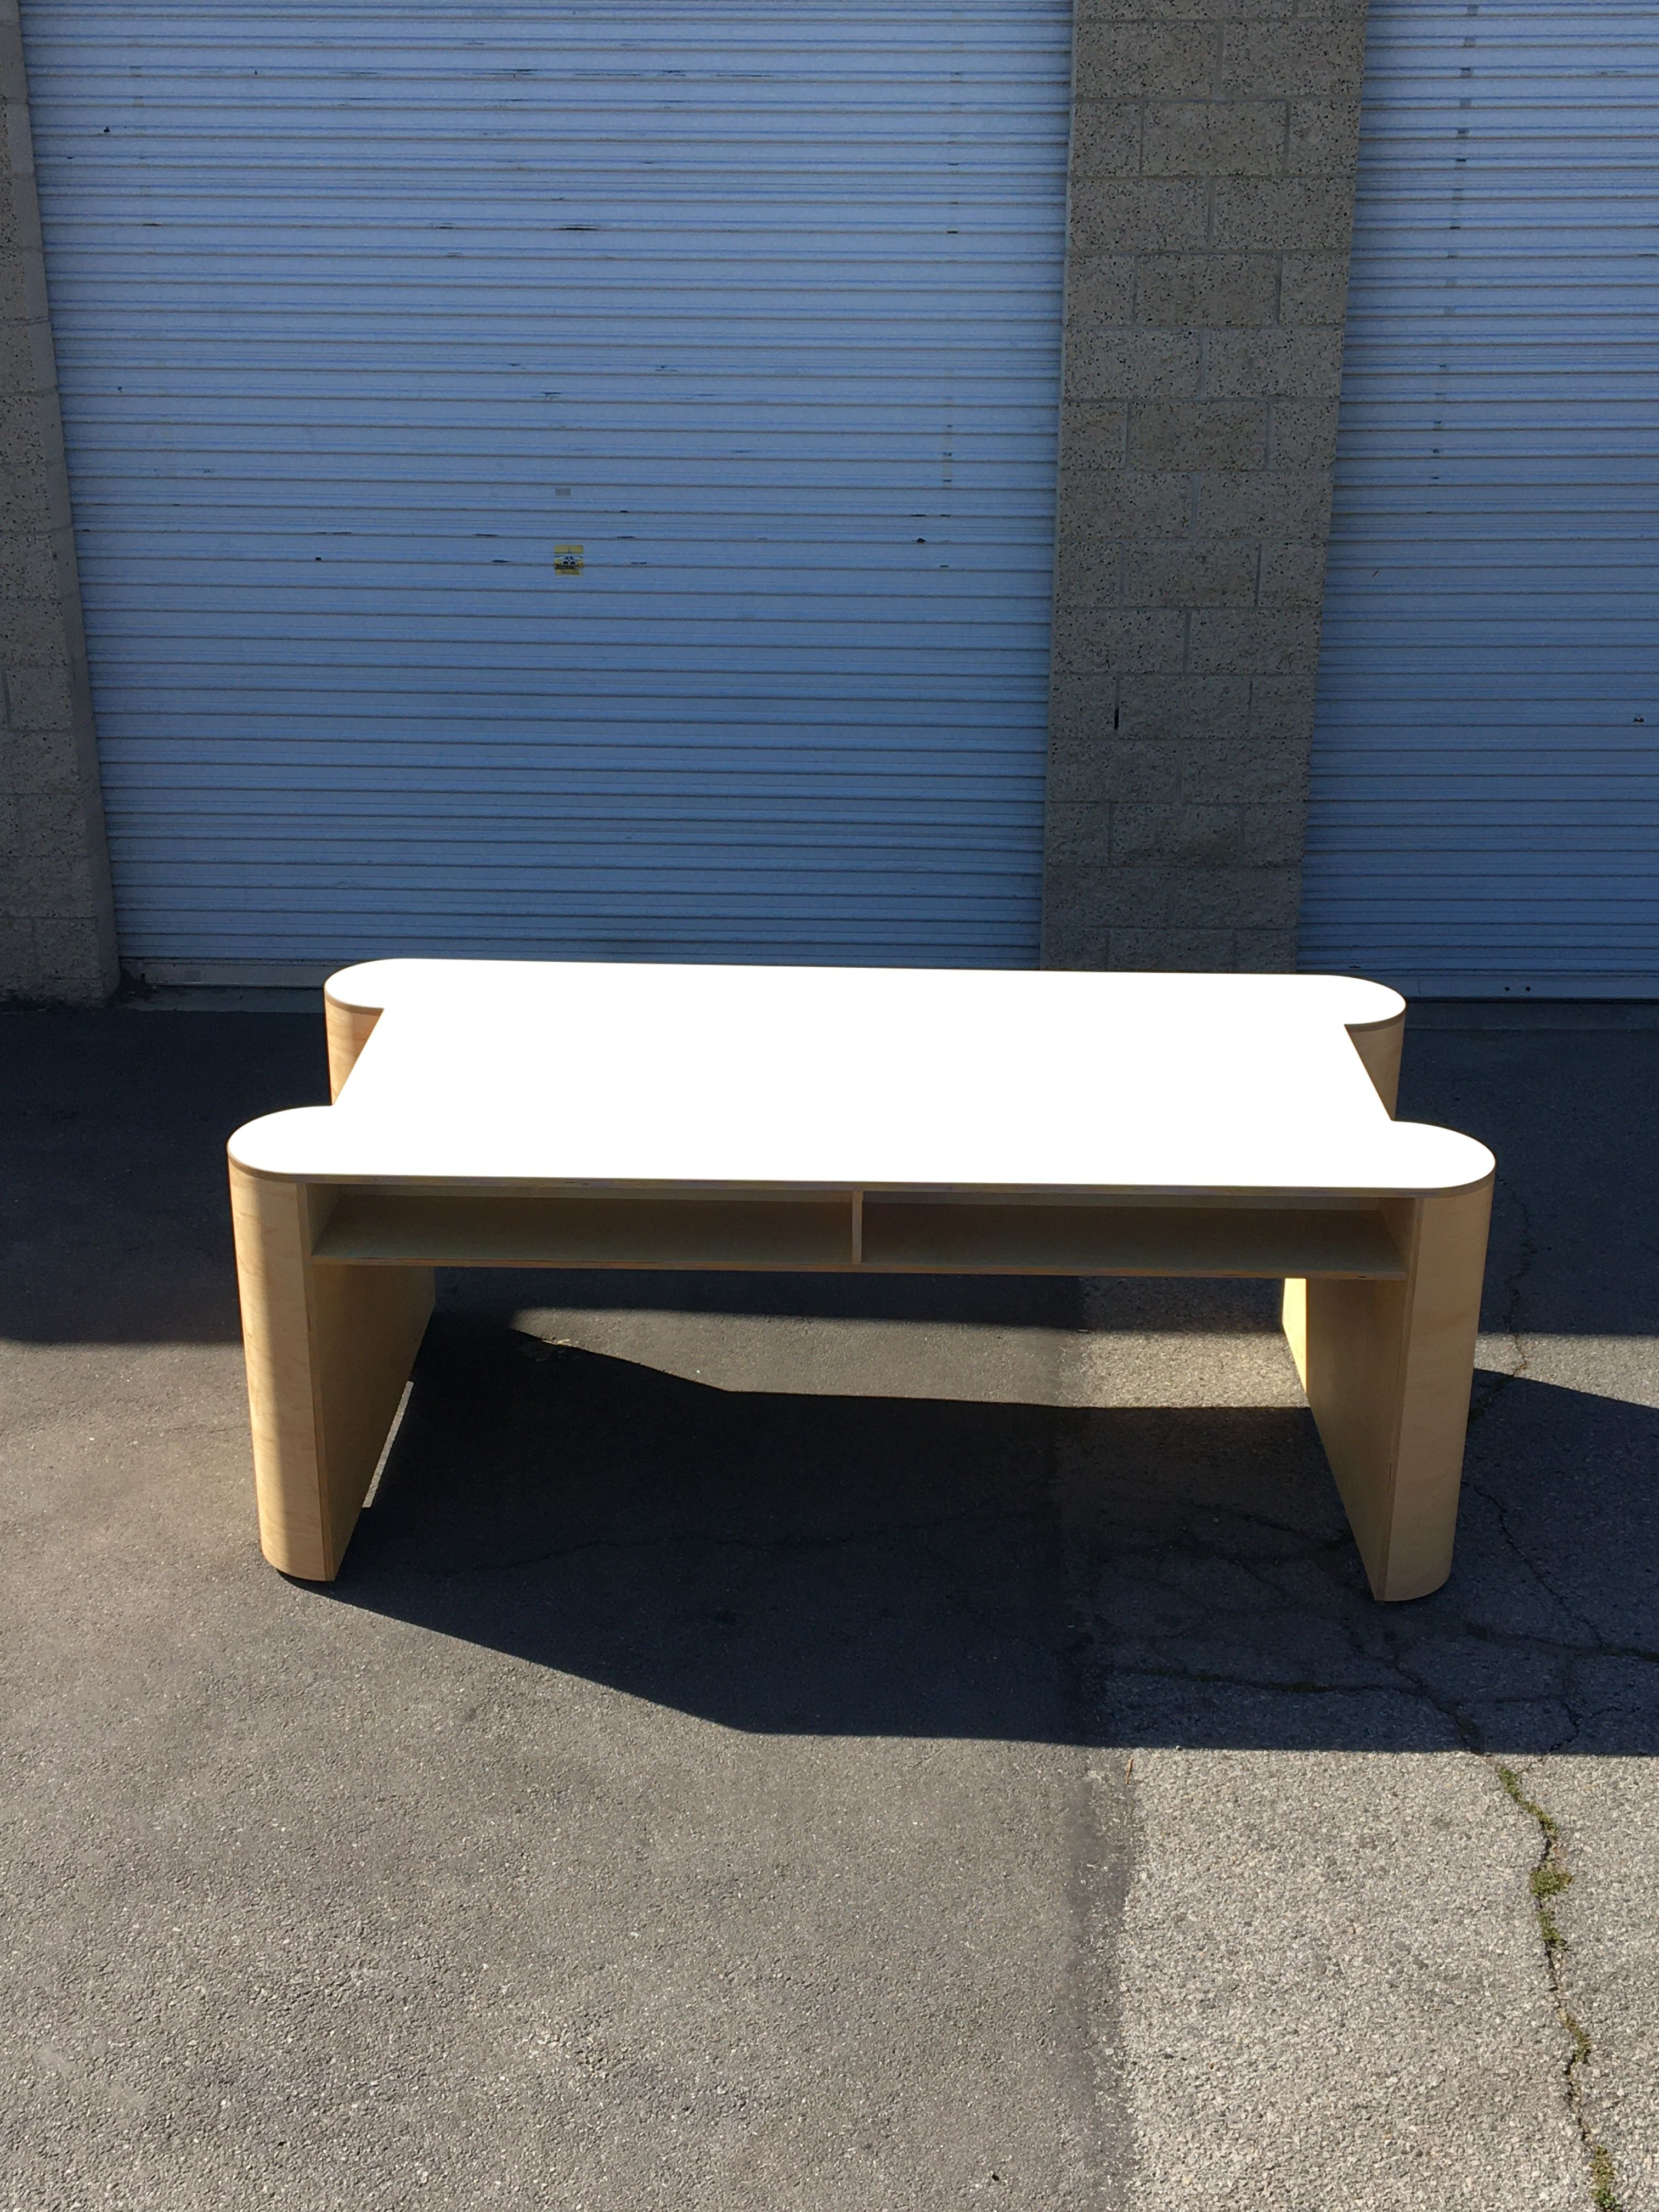 Large Rolling Work Tables product image 0